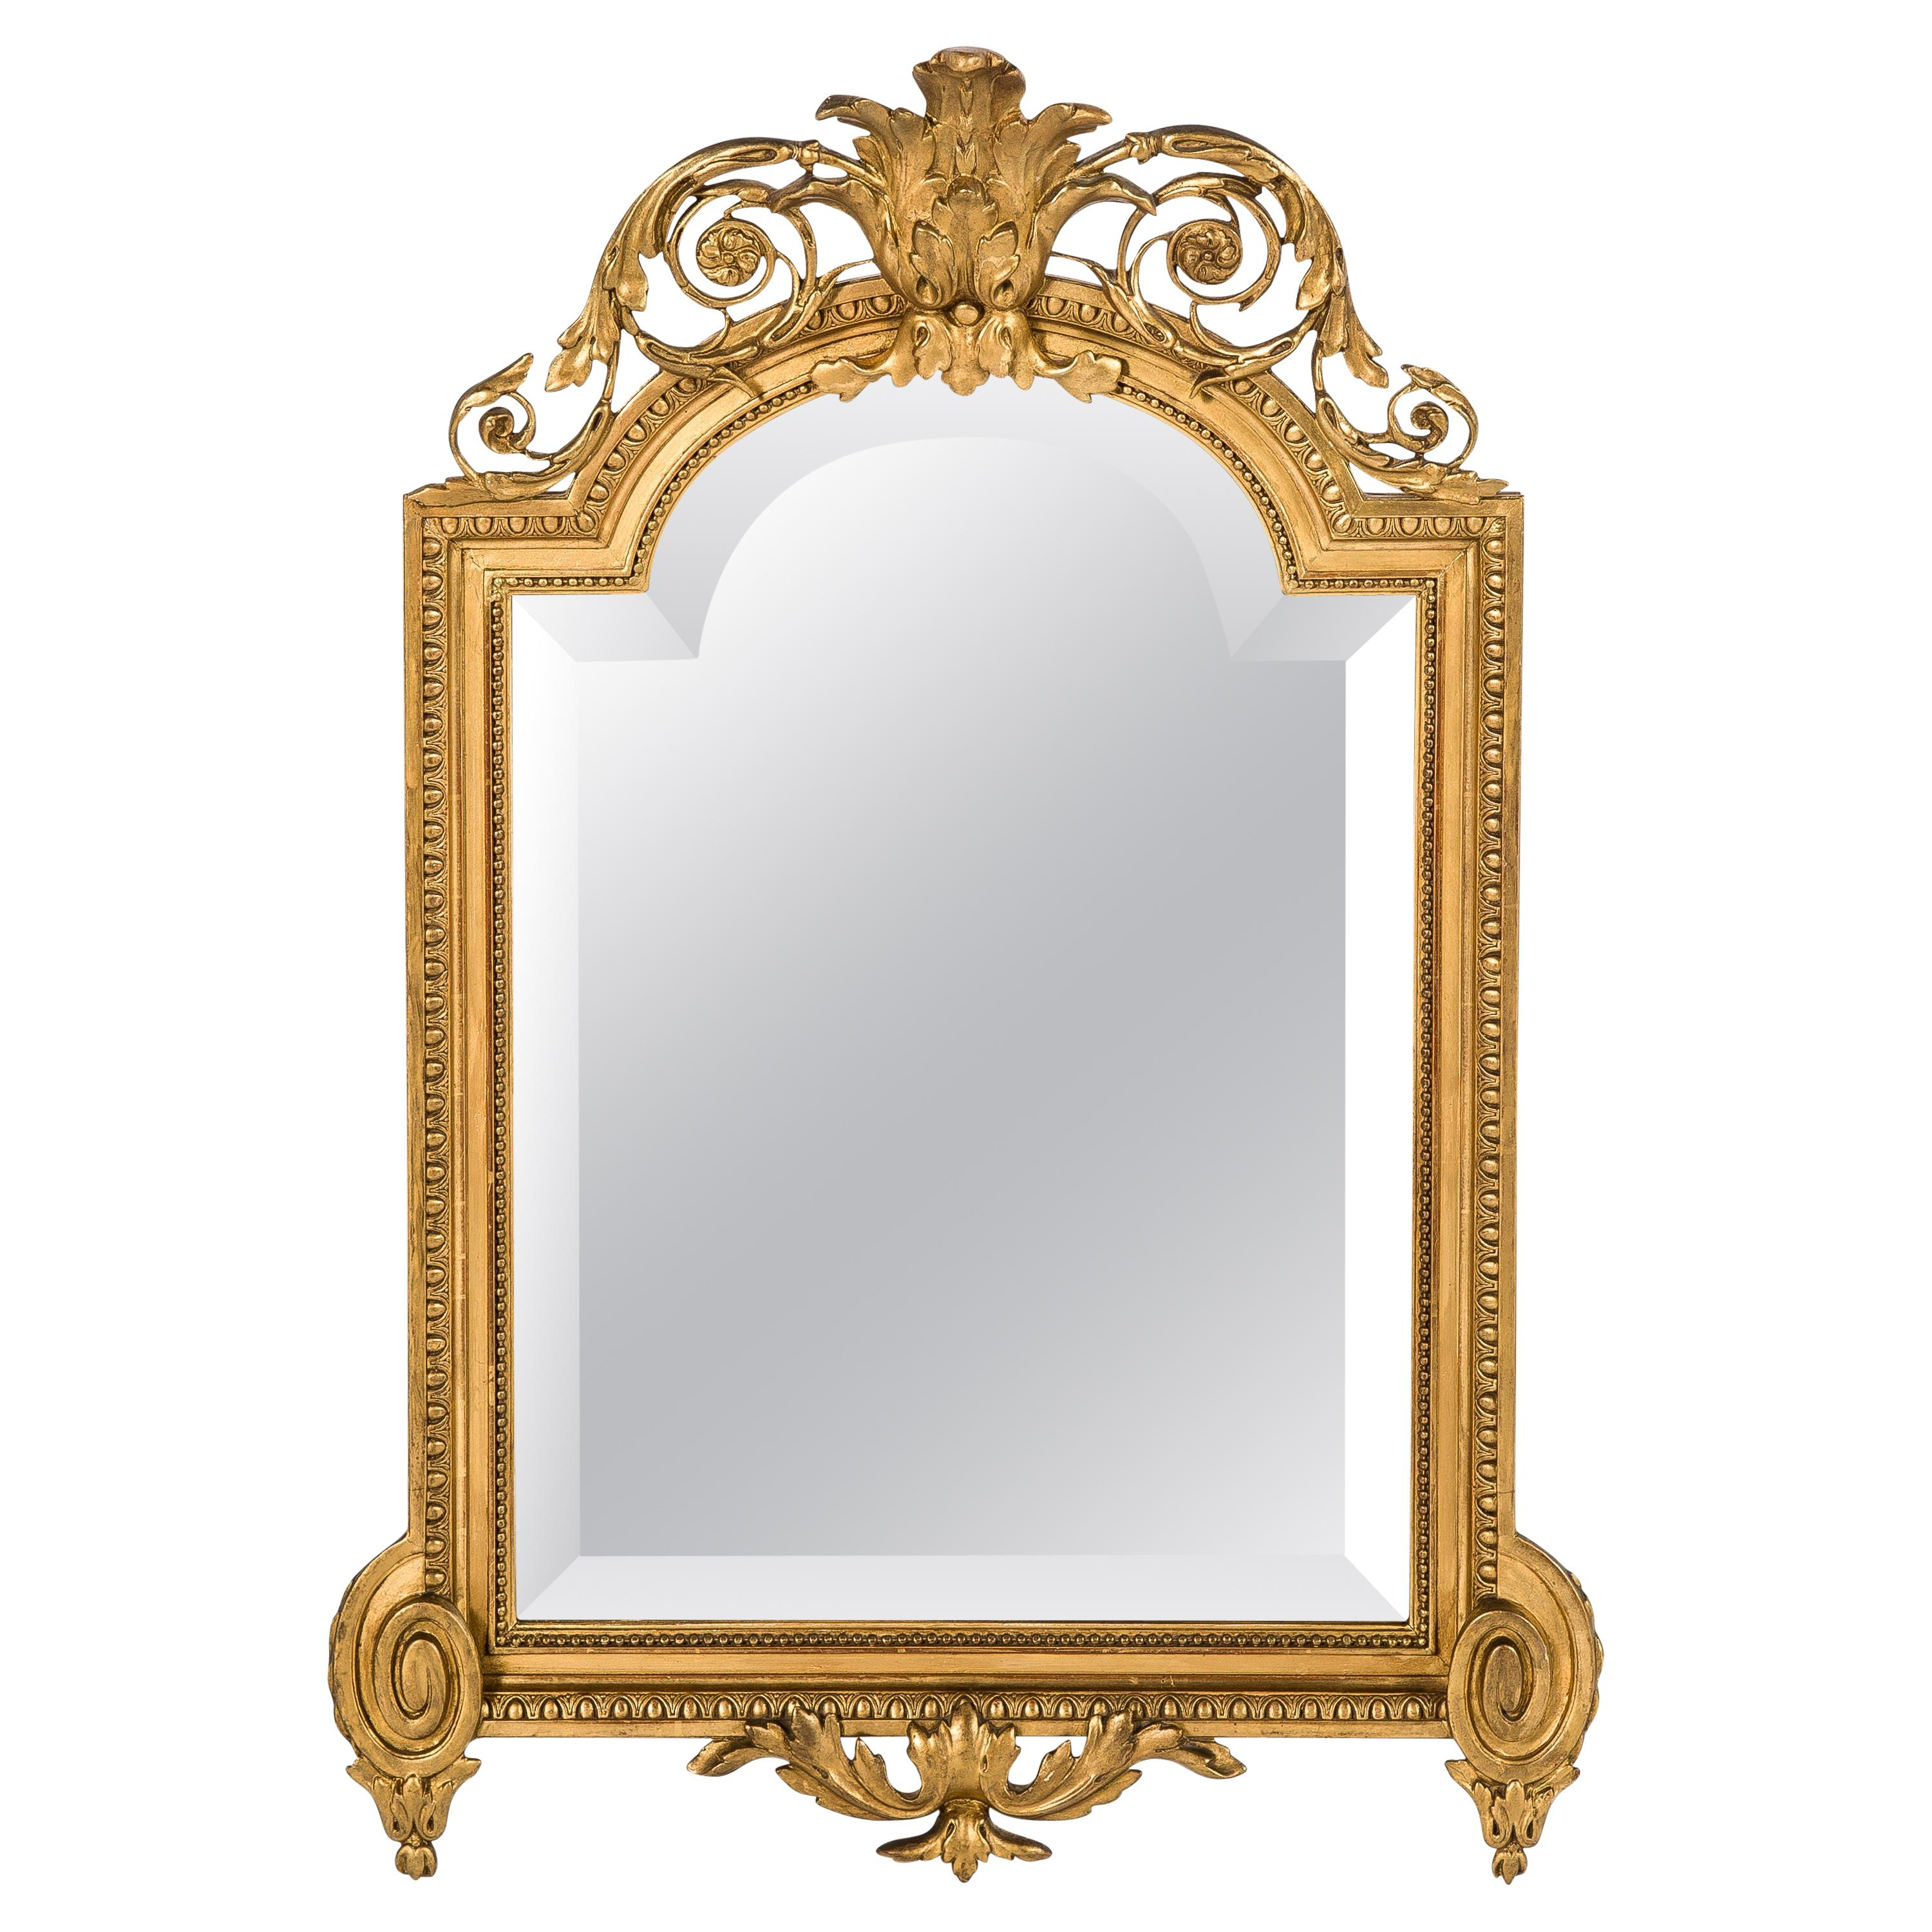 Small Antique 19th Century French Louis Seize Gold Gilt Mirror with Crest